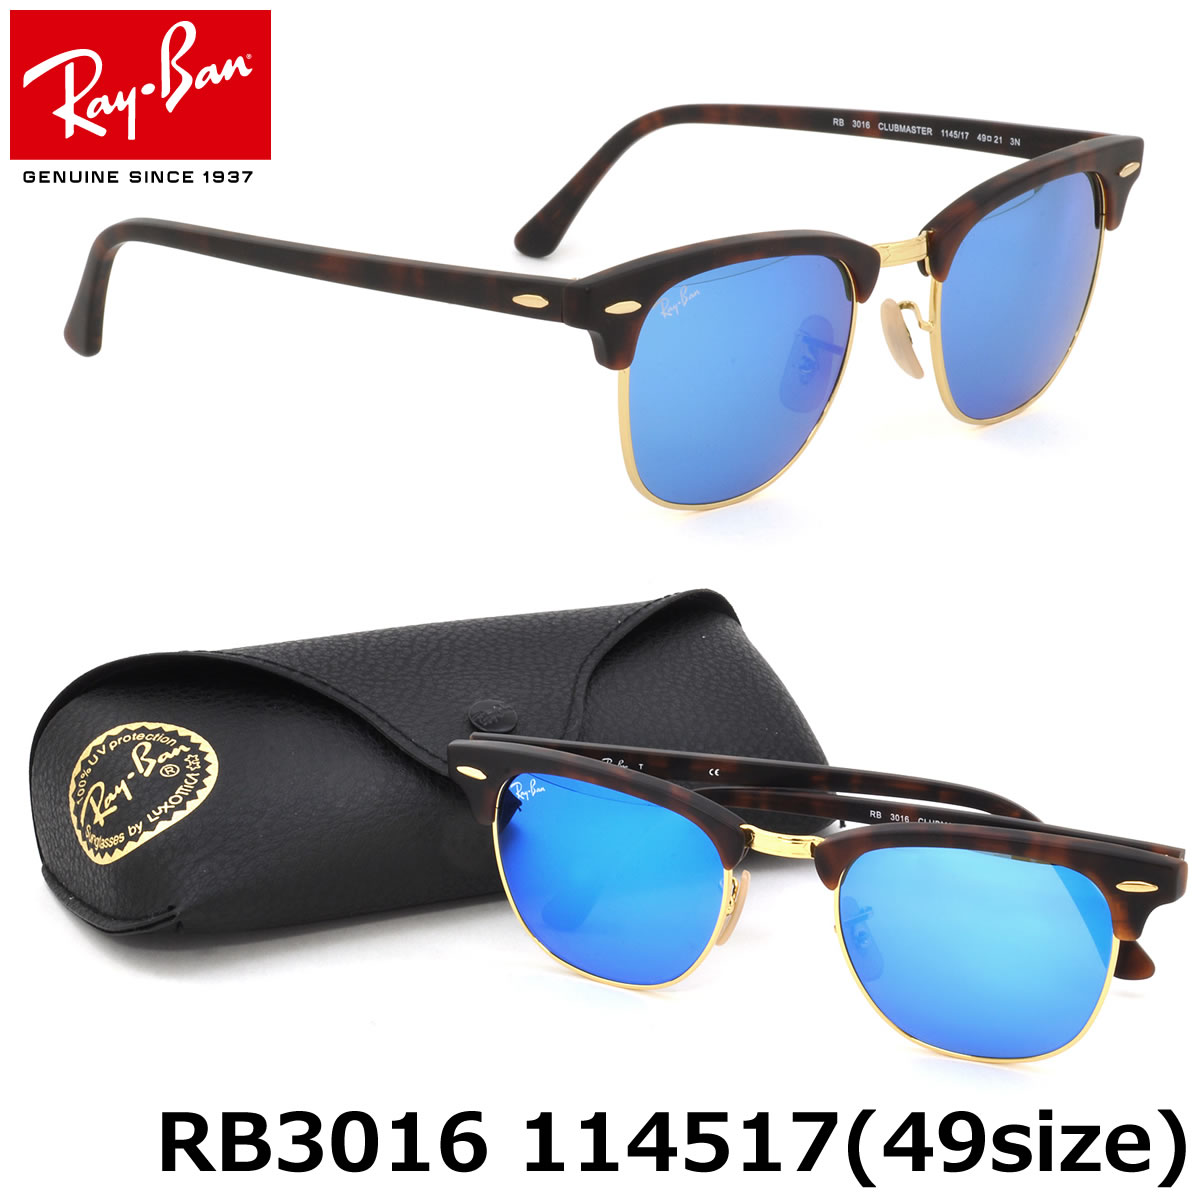 03f2fa0622 Ray-Ban sunglasses mirror club master Ray-Ban RB3016 1145 17 49 size  Ray-Ban RAYBAN CLUBMASTER FLASH LENSES 114517 サーモントブロー tortoiseshell  tortoise ...